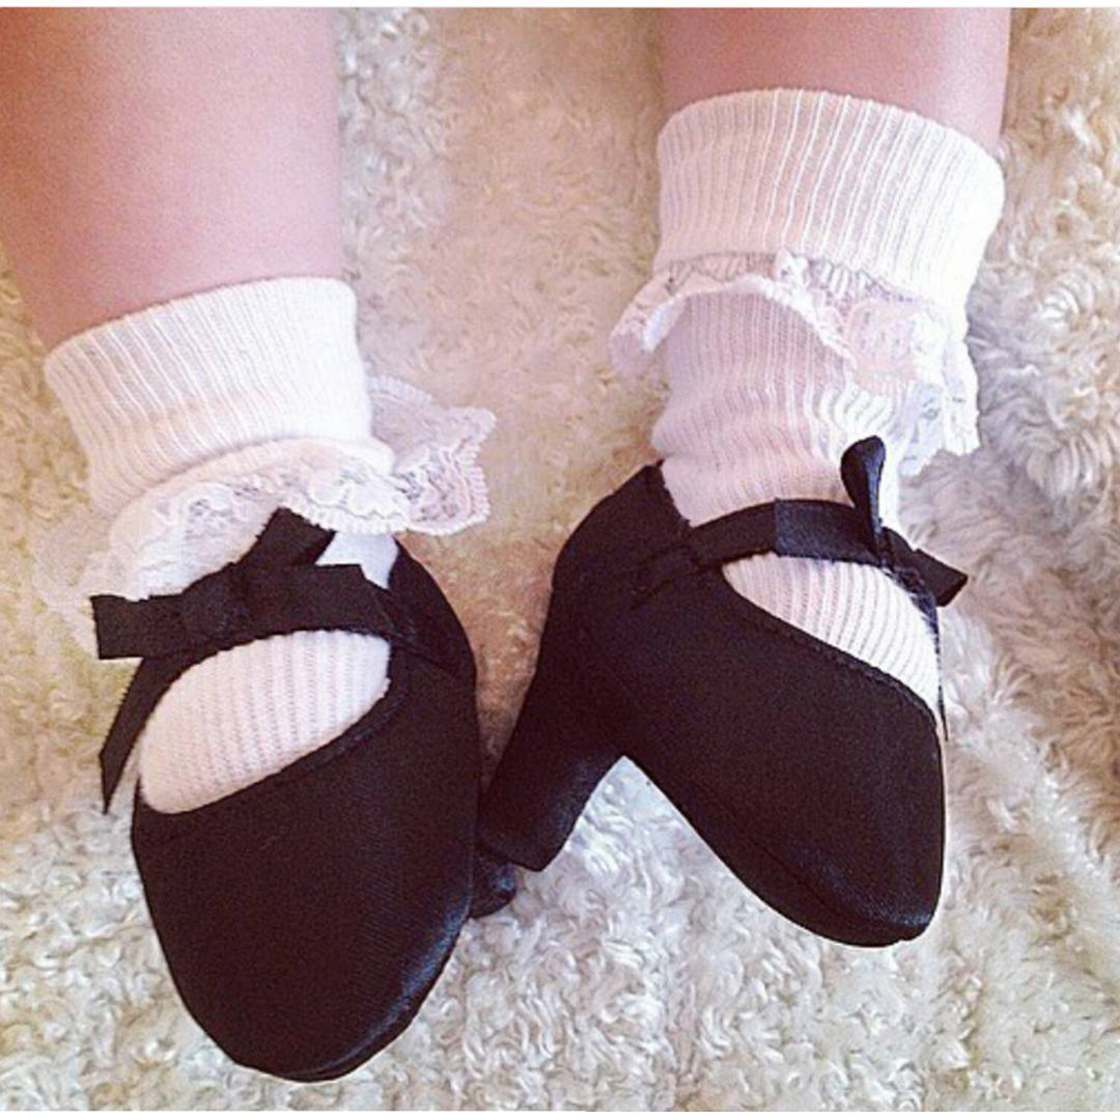 WTF of the day - There is now high heels shoes for babies